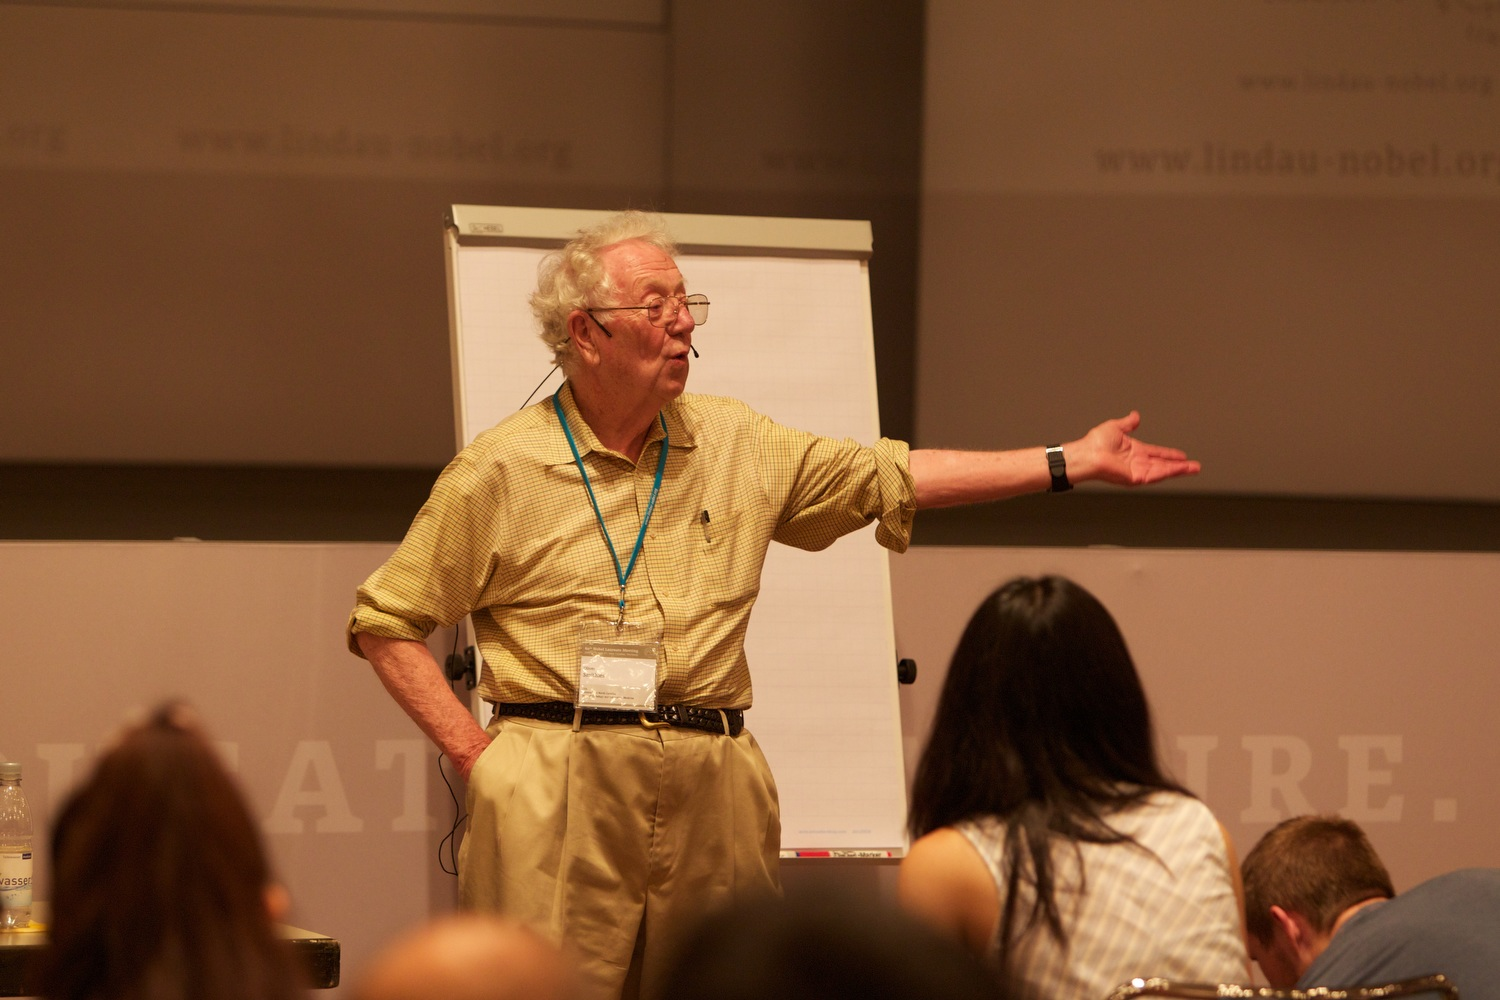 Oliver Smithies at his discussion session in Lindau 2010. Photo: Ch. Flemming/Lindau Nobel Laureate Meetings